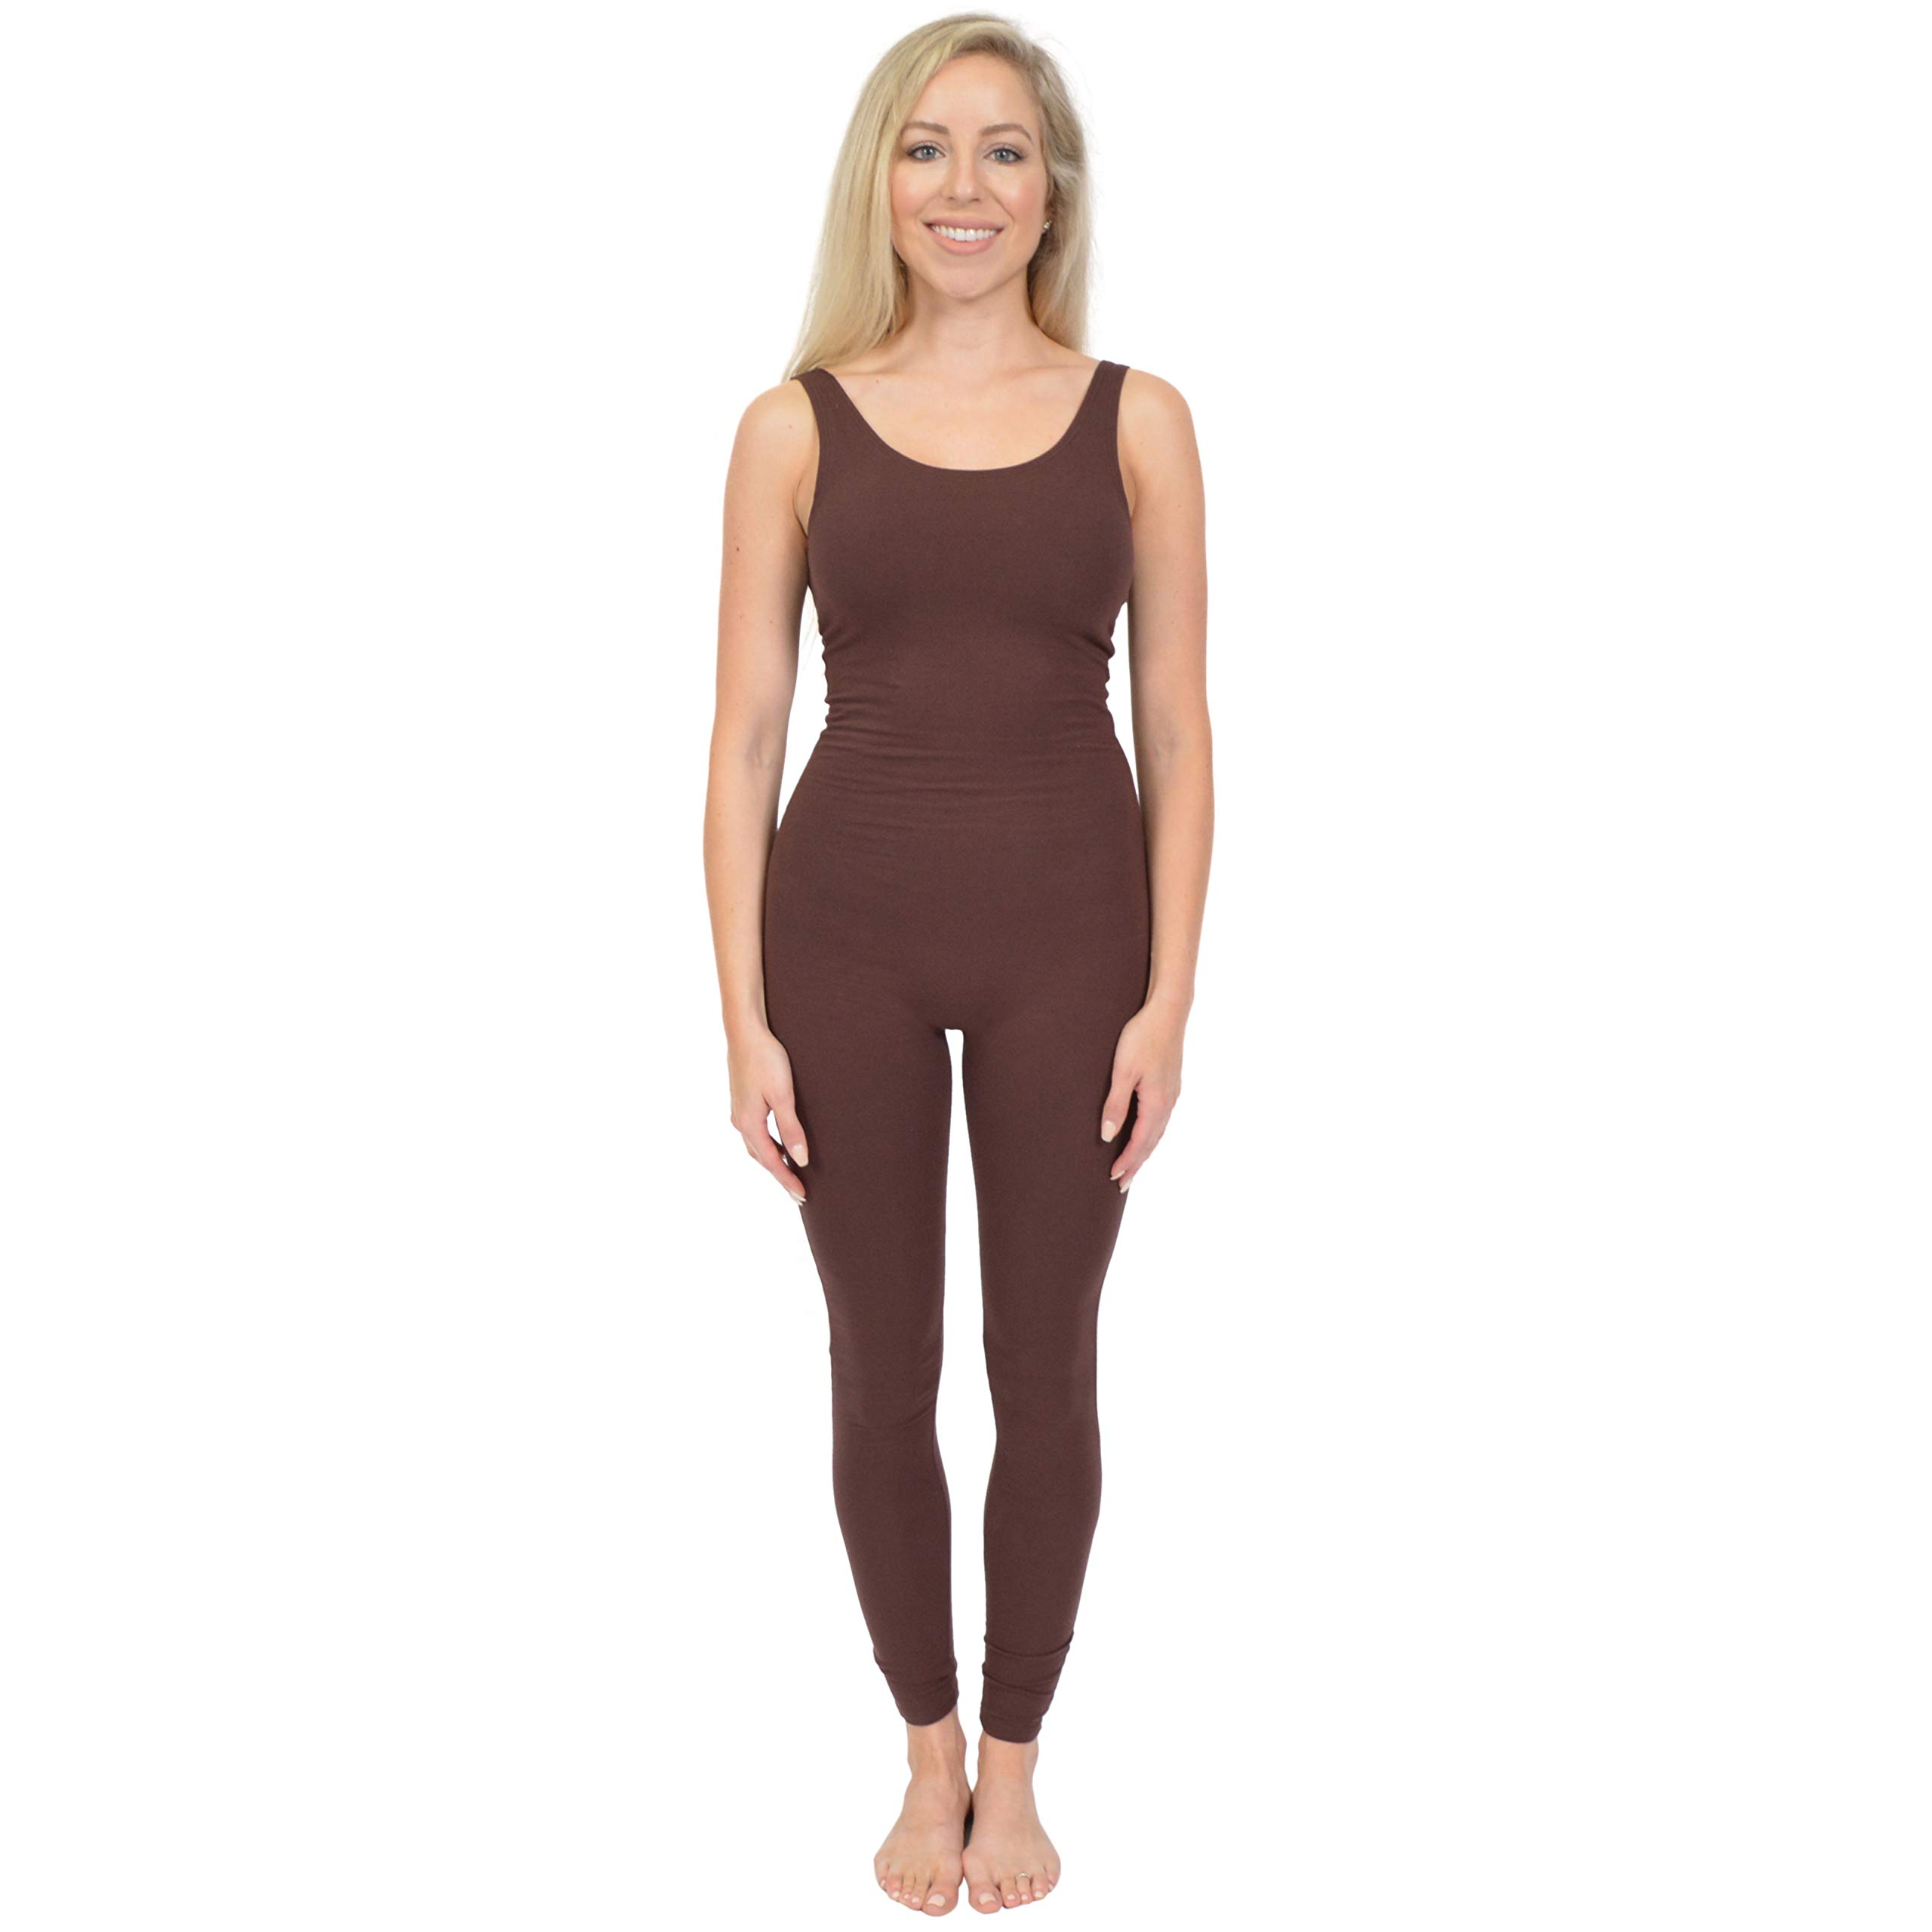 Stretch is Comfort Women's Teamwear Cotton Tank Unitard Brown Small by Stretch is Comfort